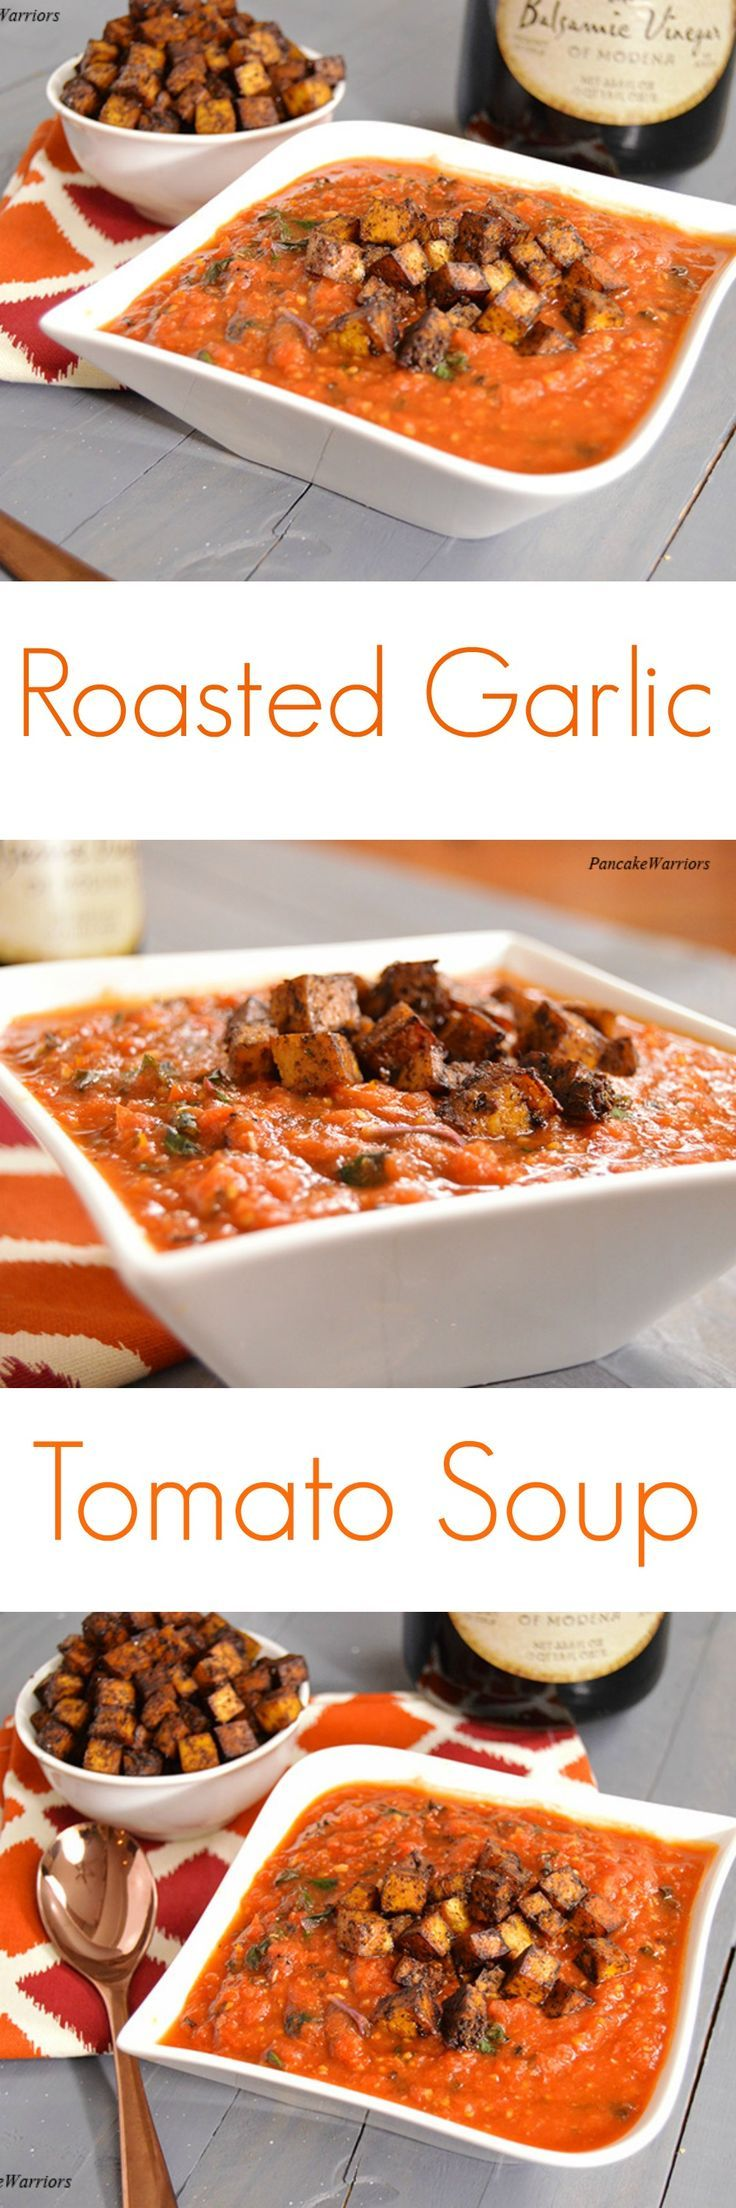 Homemade Roasted Garlic Tomato Soup - simple easy recipe perfect for dinner! Vegan, gluten free, low fat.